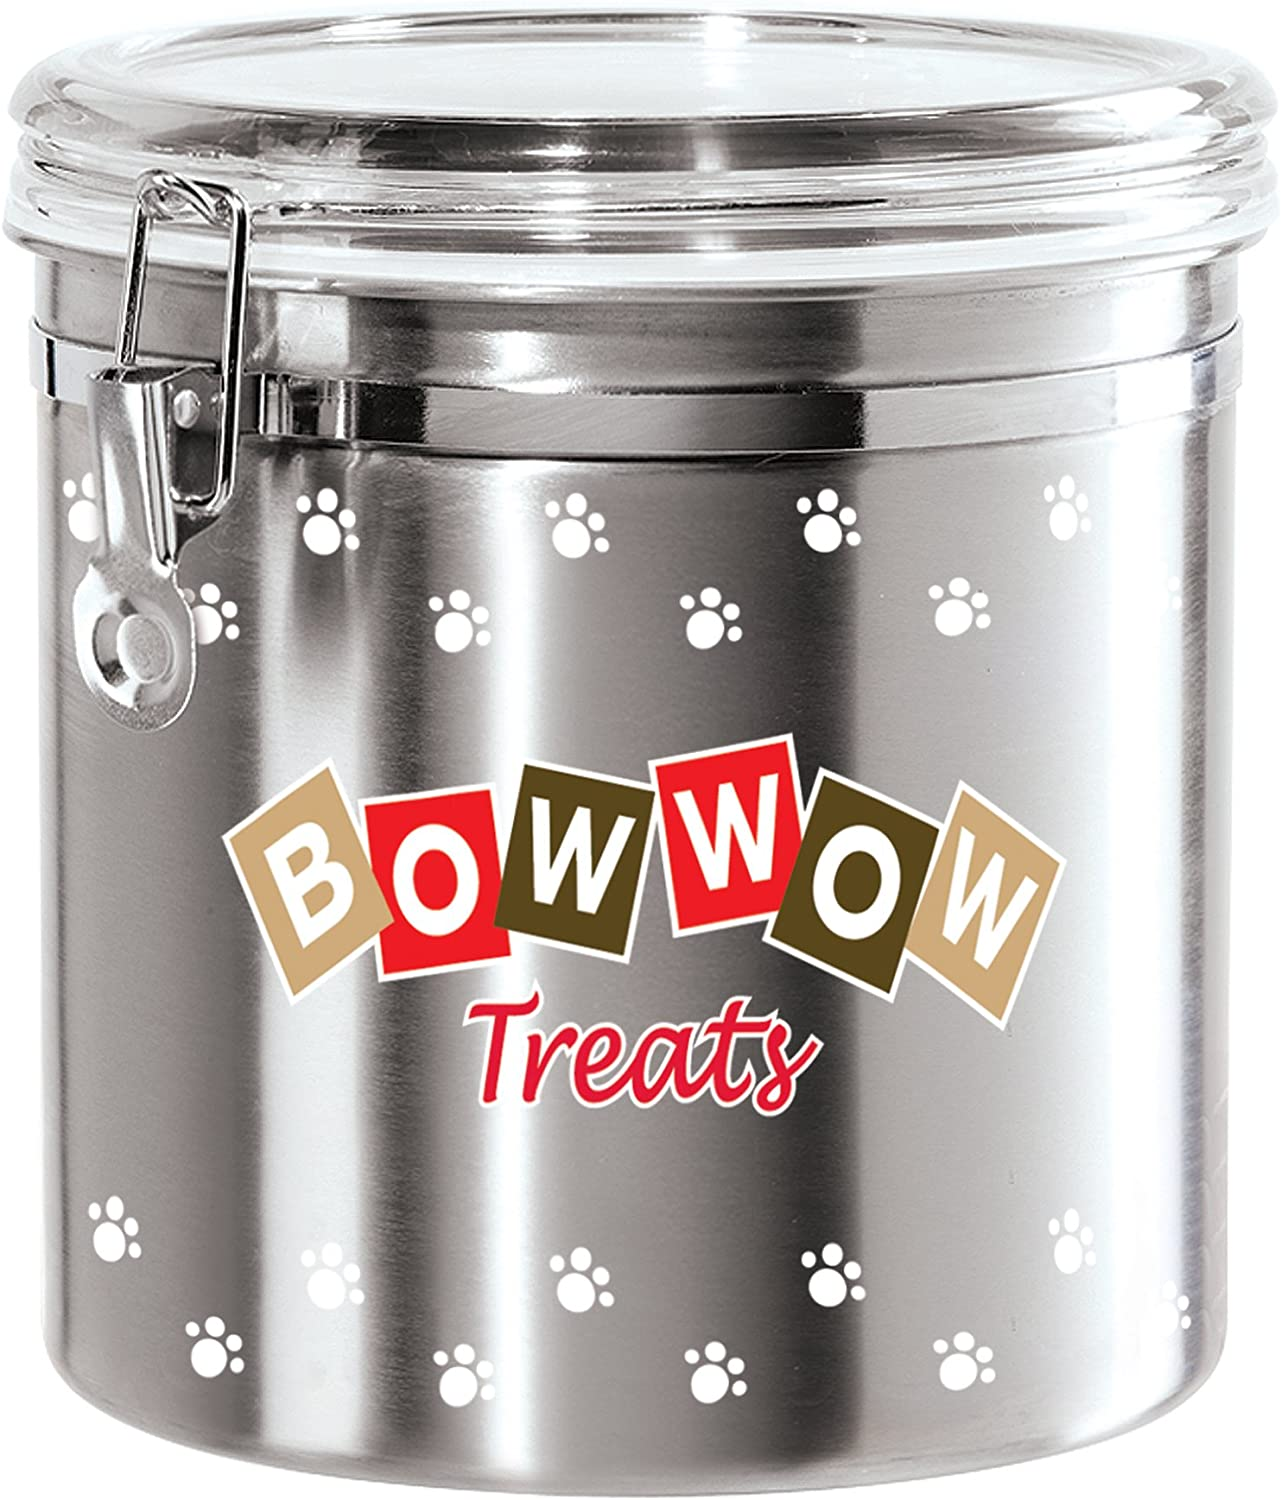 Oggi Jumbo Airtight Stainless Steel Pet Treat Canister with Bow Wow Motif-Clear Acrylic Flip-Top Lid and Locking Clamp Closure, 130 oz, Silver